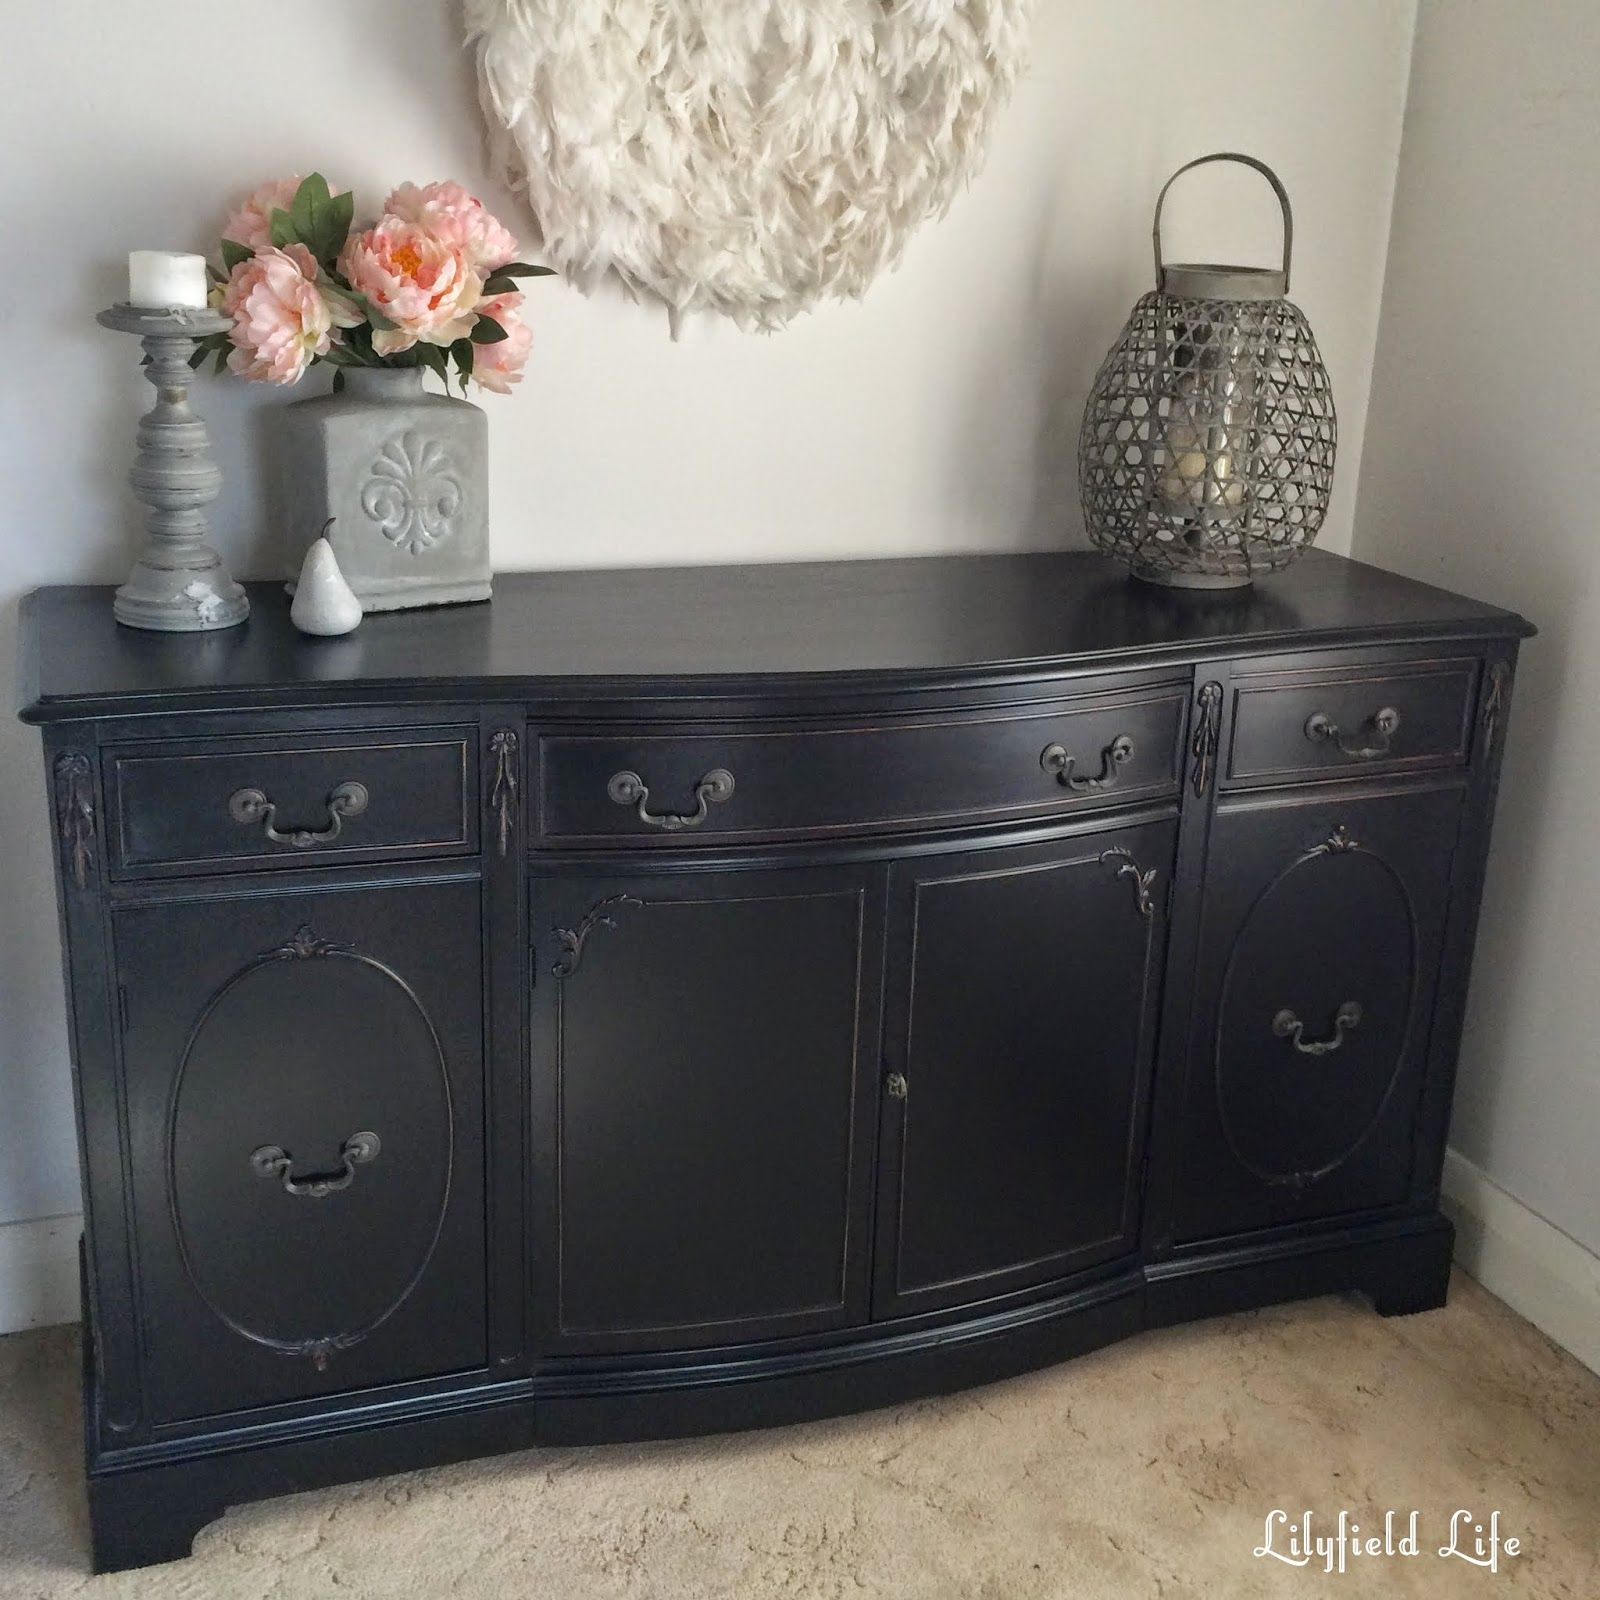 How To Paint Furniture Black: Sideboard Makeover By Lilyfield Life